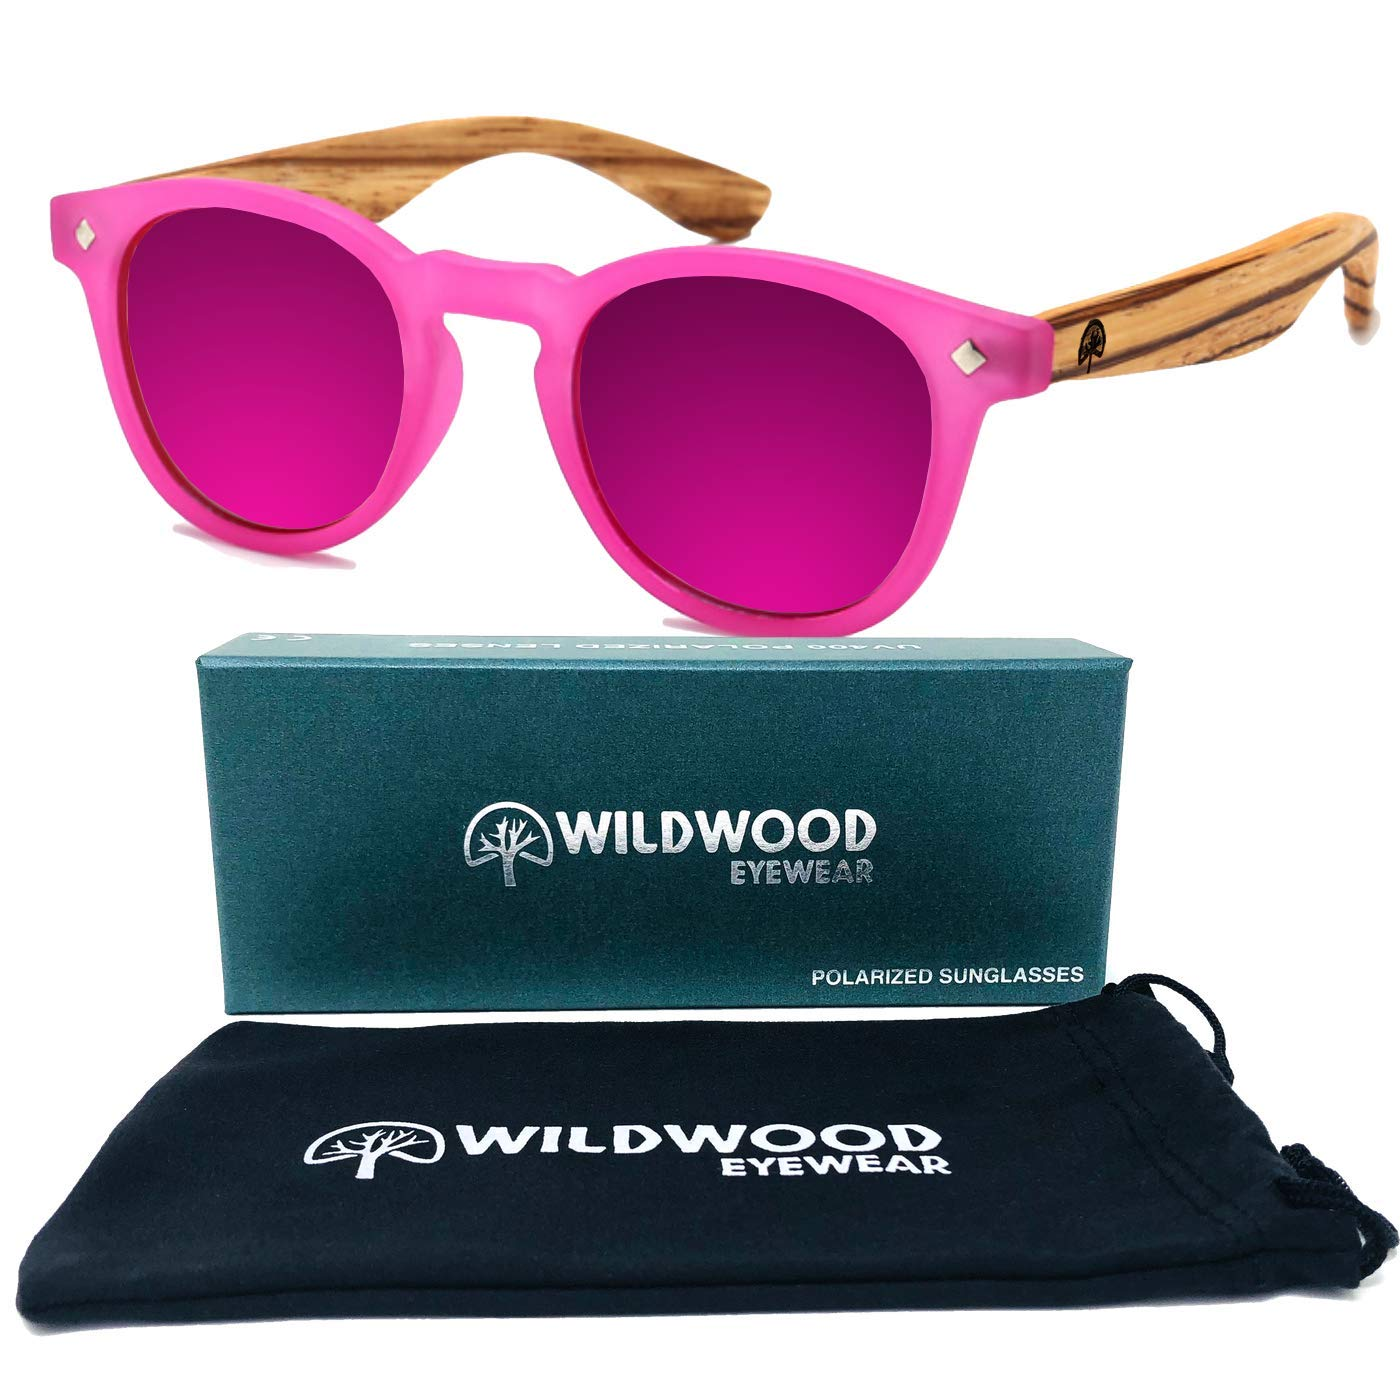 Kids Cat Eye Zebra Wood Polarized Sunglasses by Wildwood - Children ages 4 to 8 years